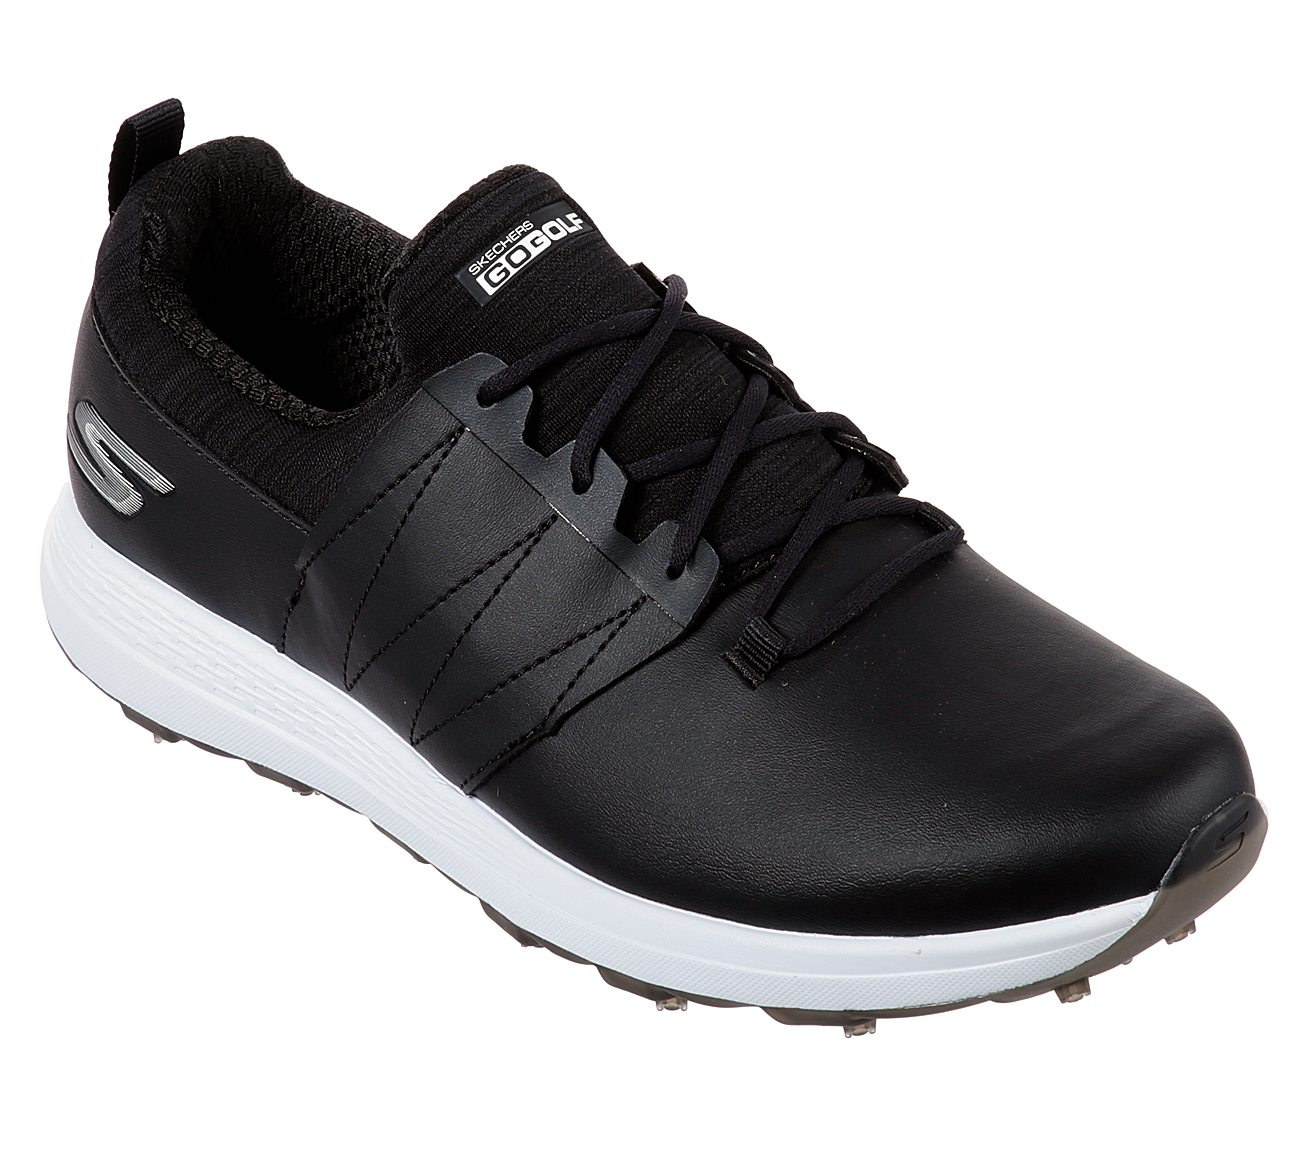 SKECHERS GO GOLF MAX - HONEY